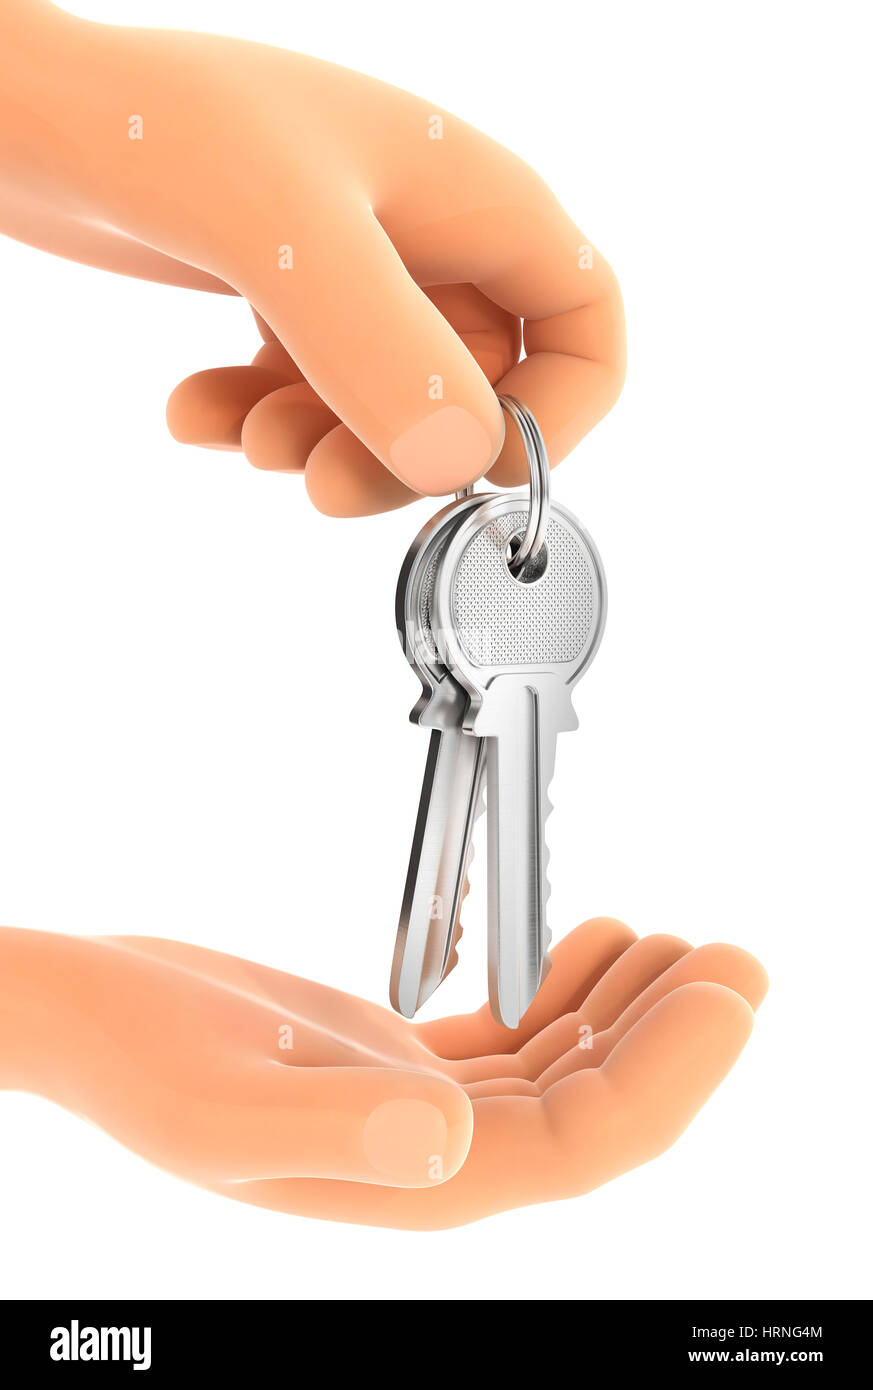 3d hand handing over the keys, illustration with isolated white background Stock Photo